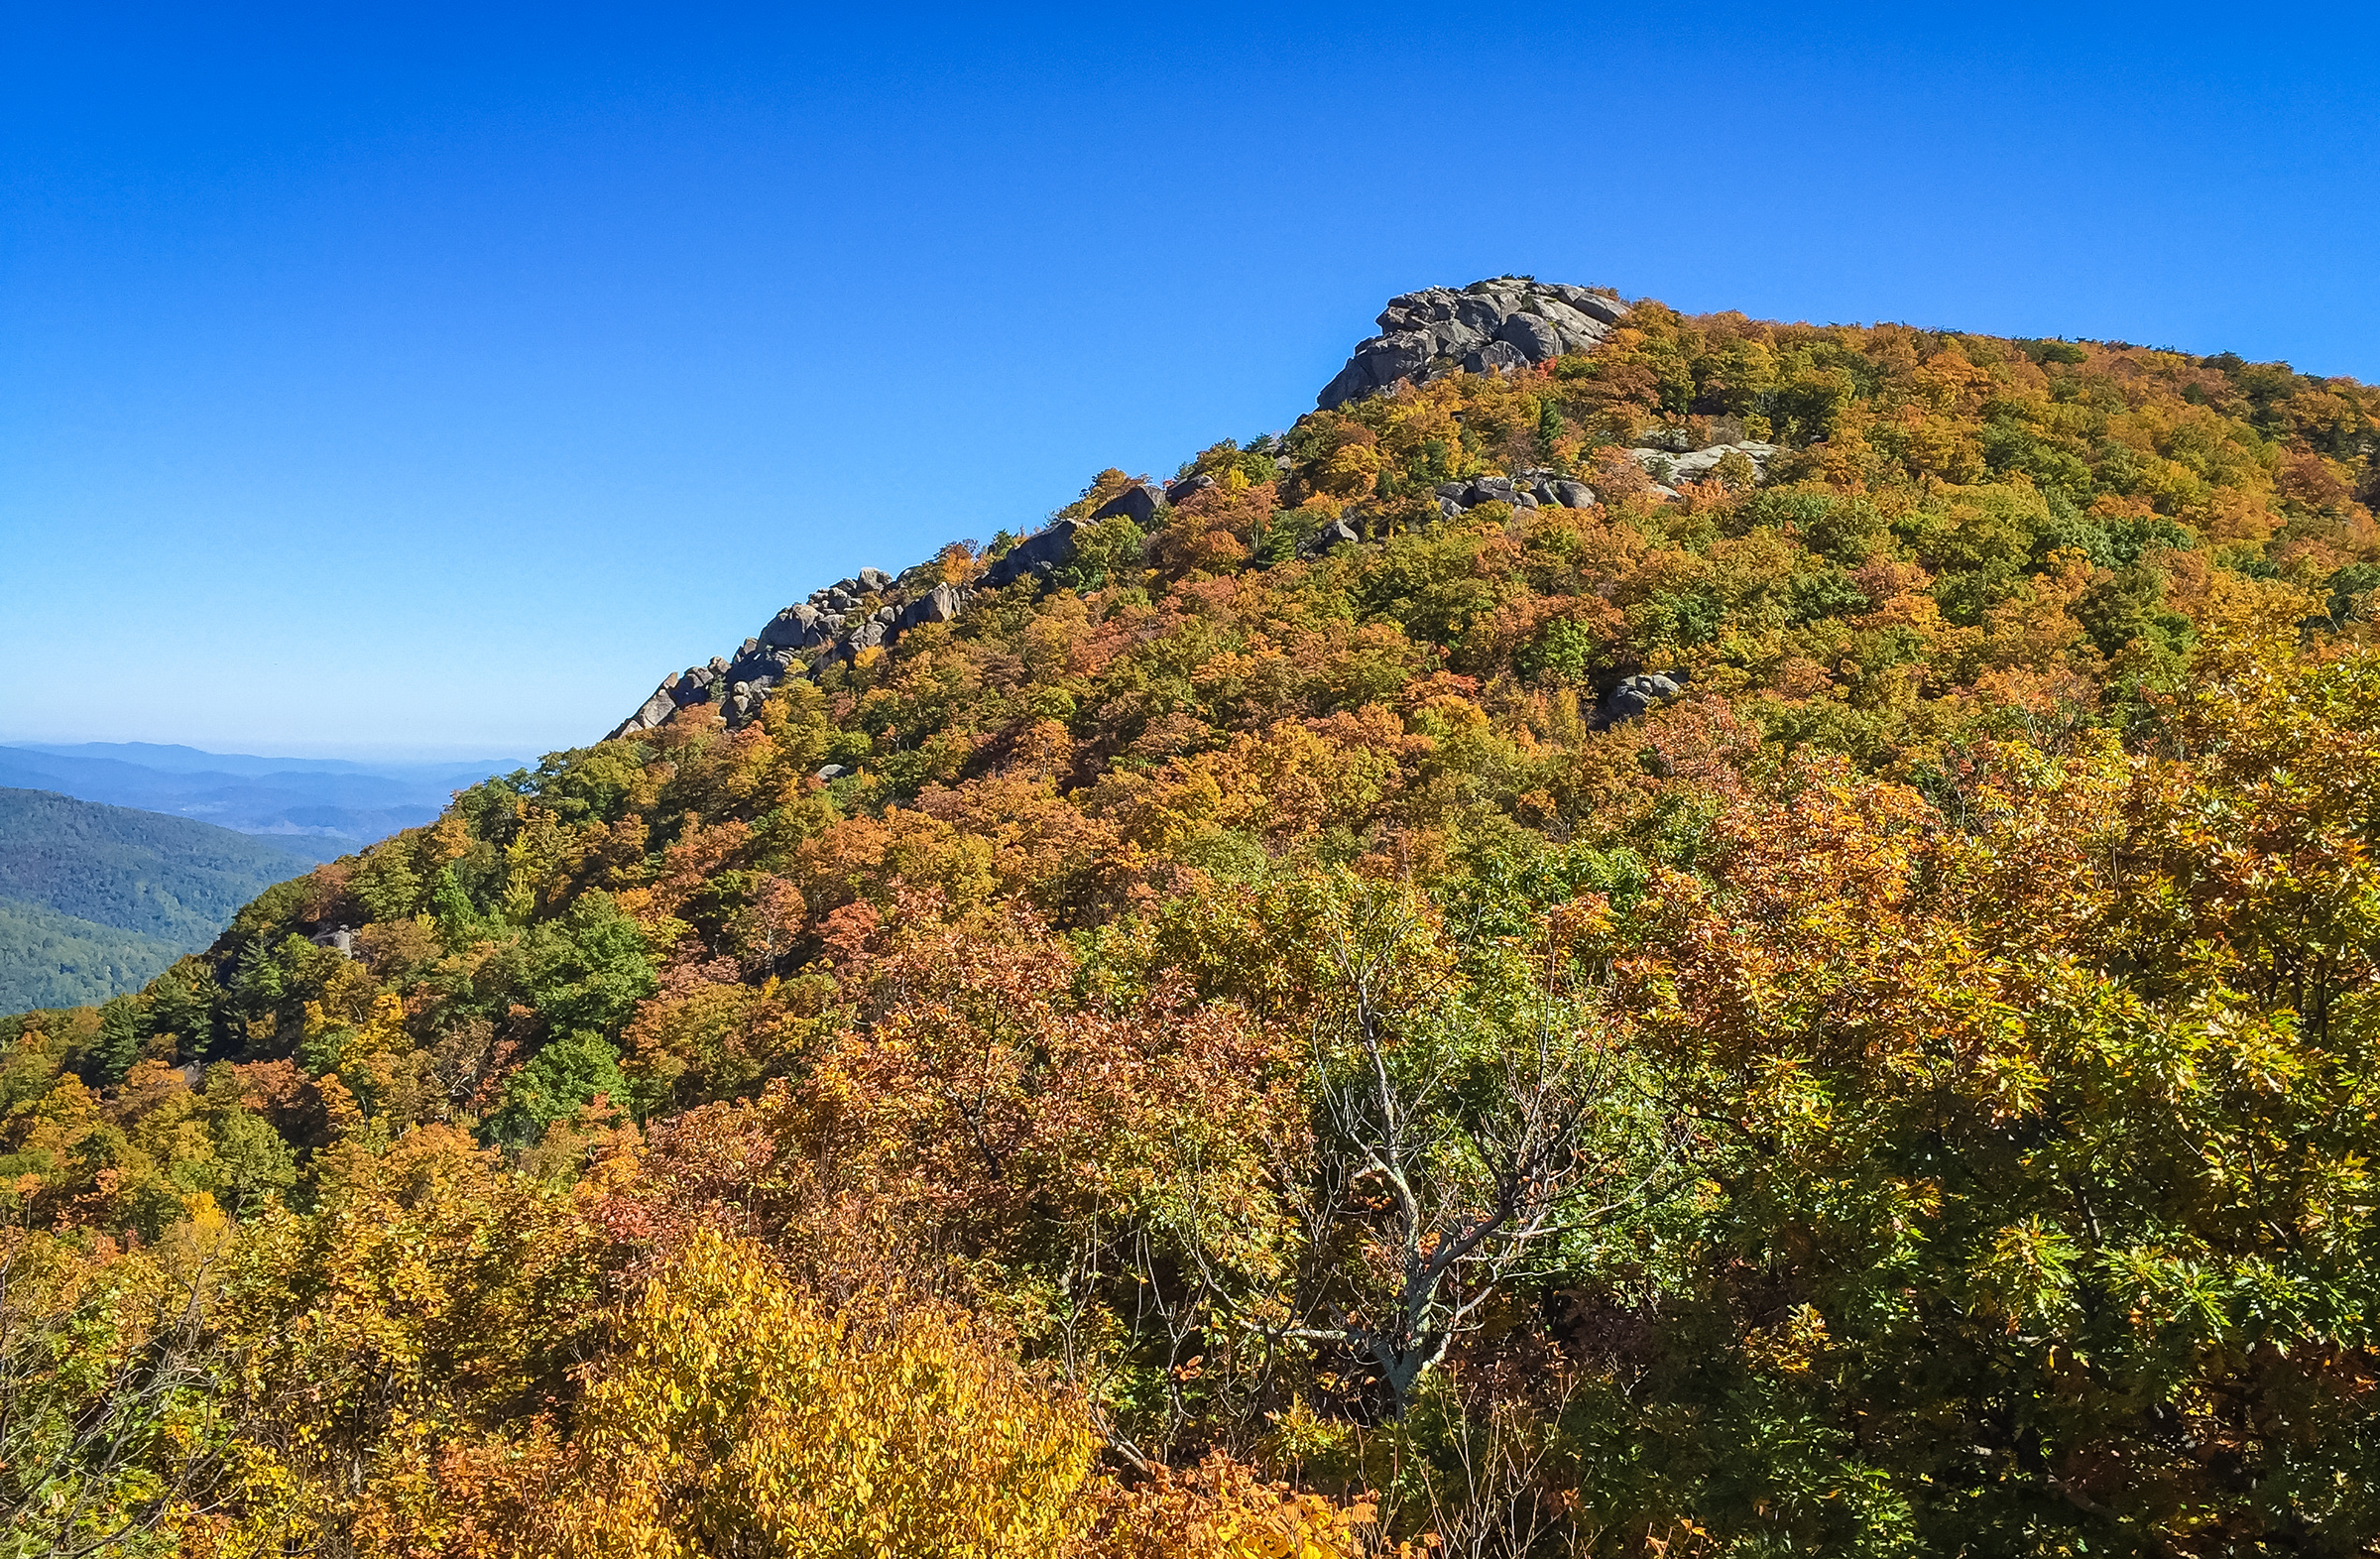 View from Birds' Nest - Old Rag Mountain, Virginia